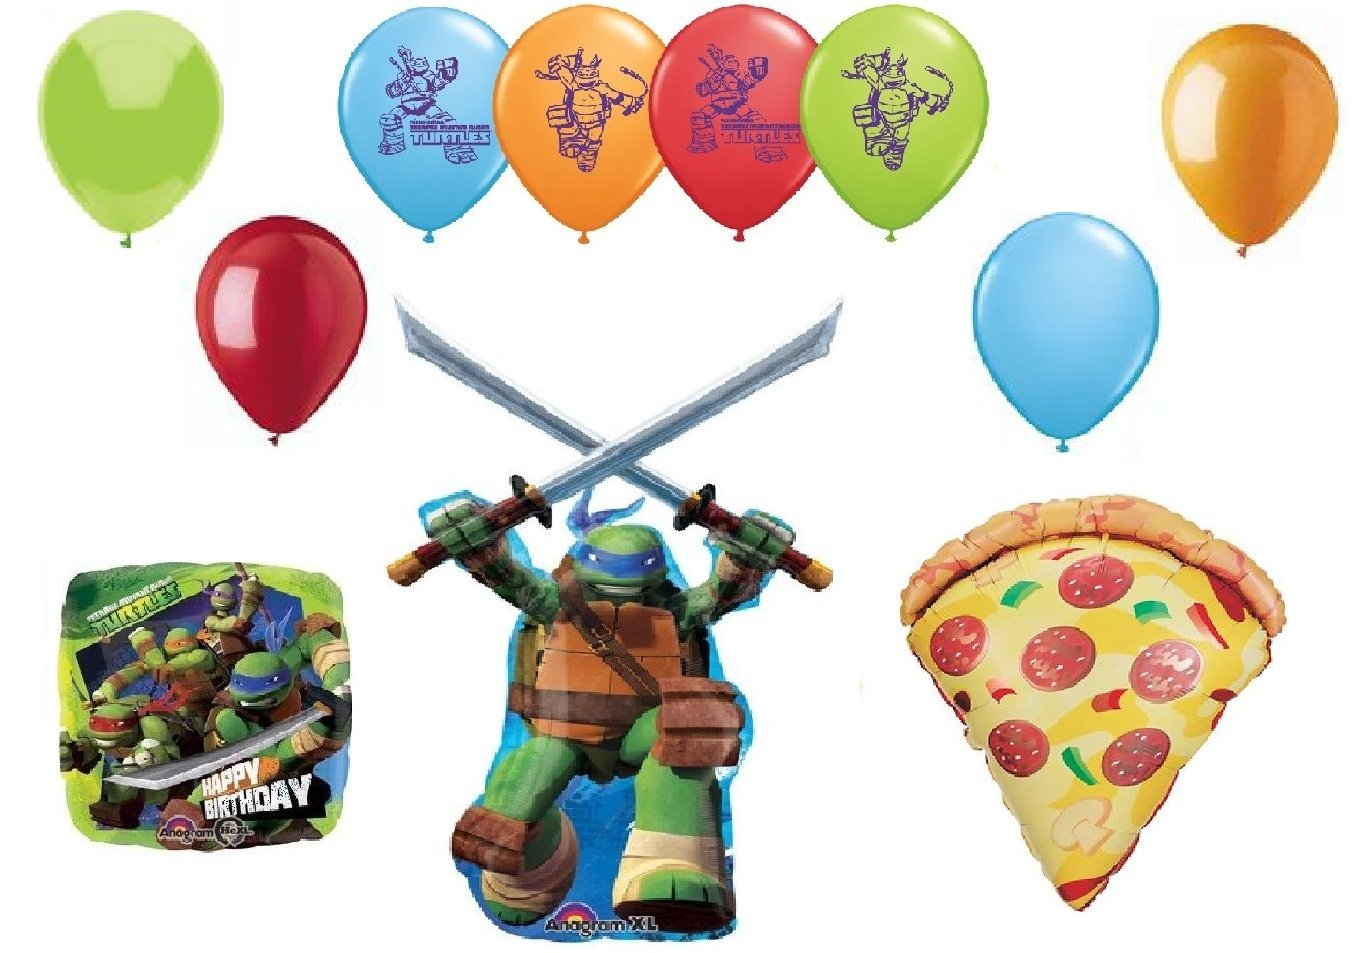 Amazon.com: Teenage Mutant Ninja Turtles y pizza Fiesta de ...